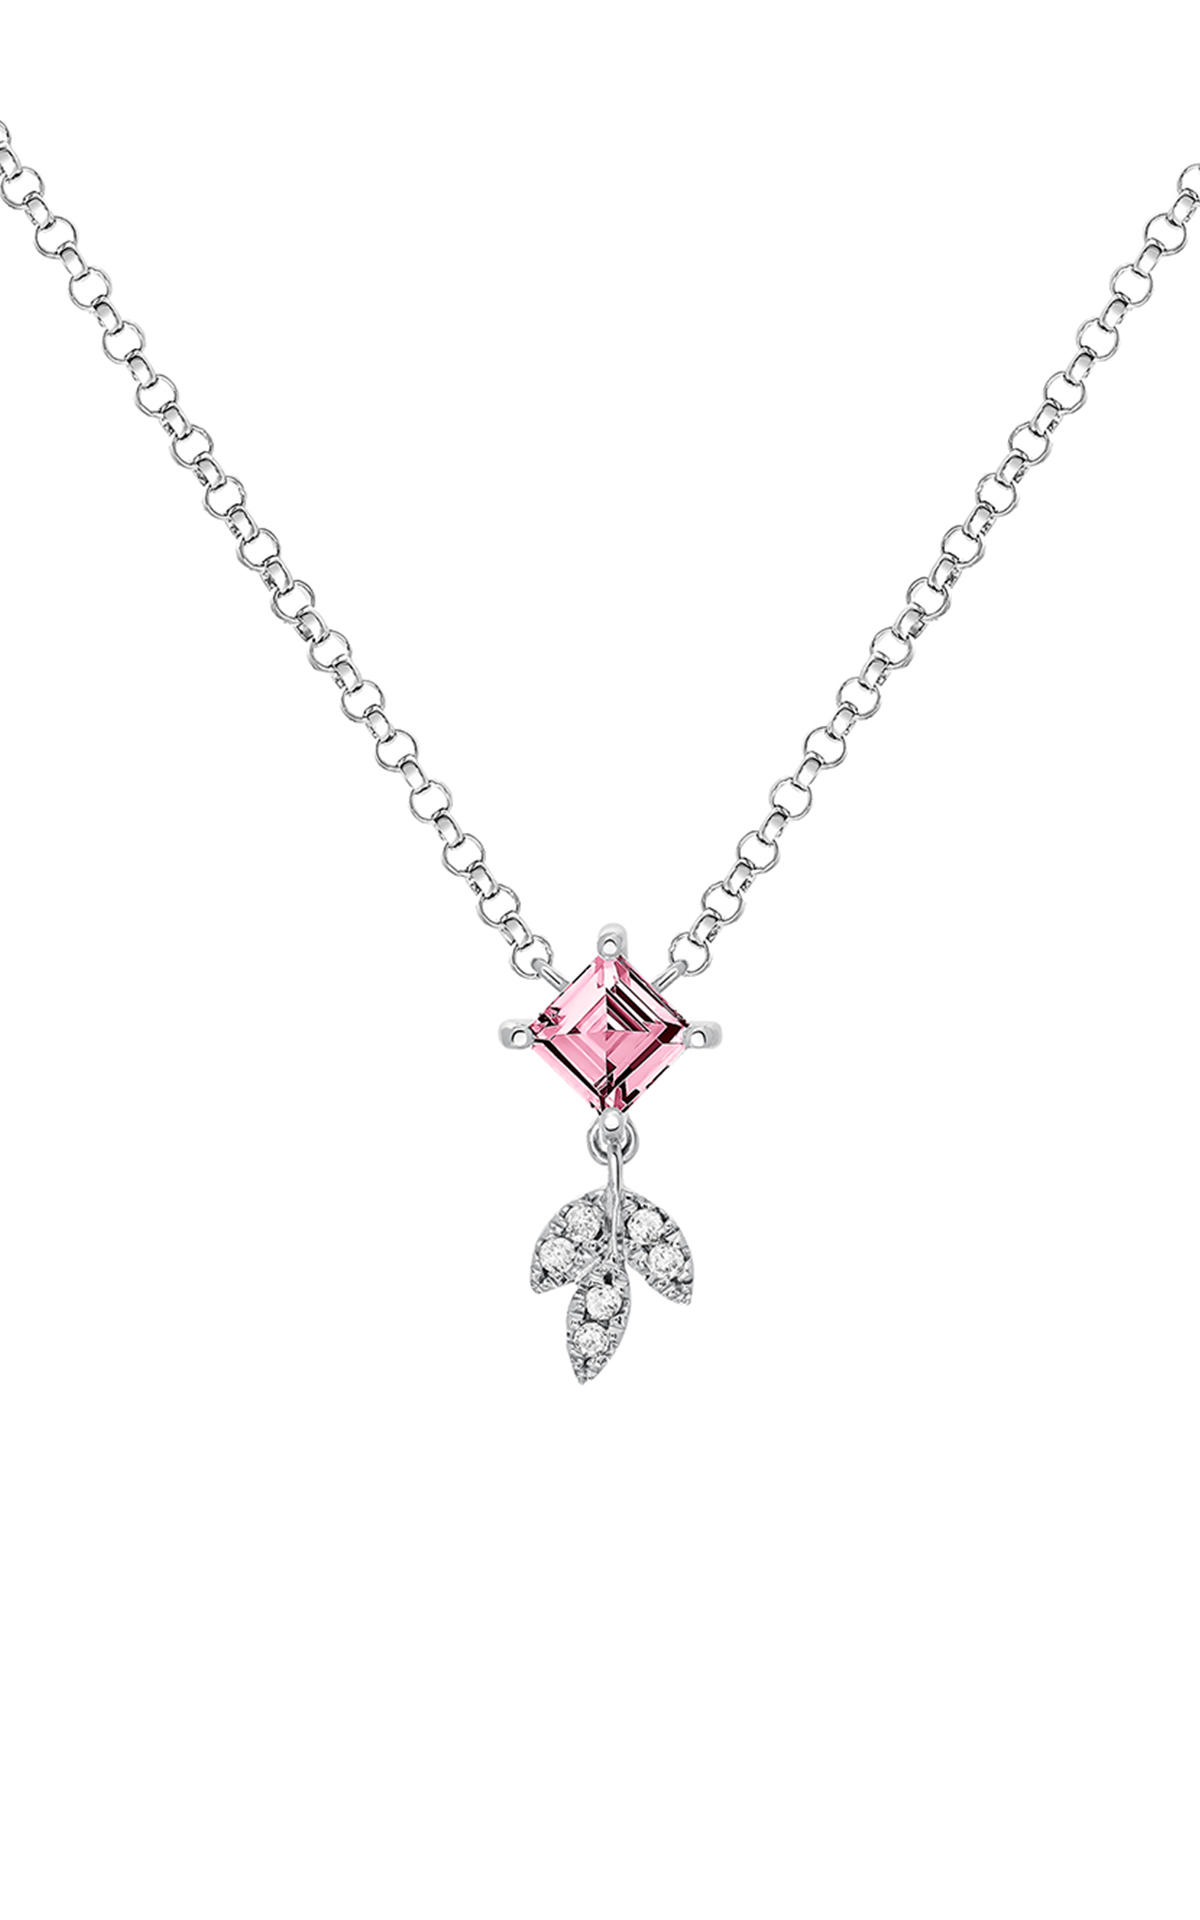 Necklace with a pink stone Aristocrazy